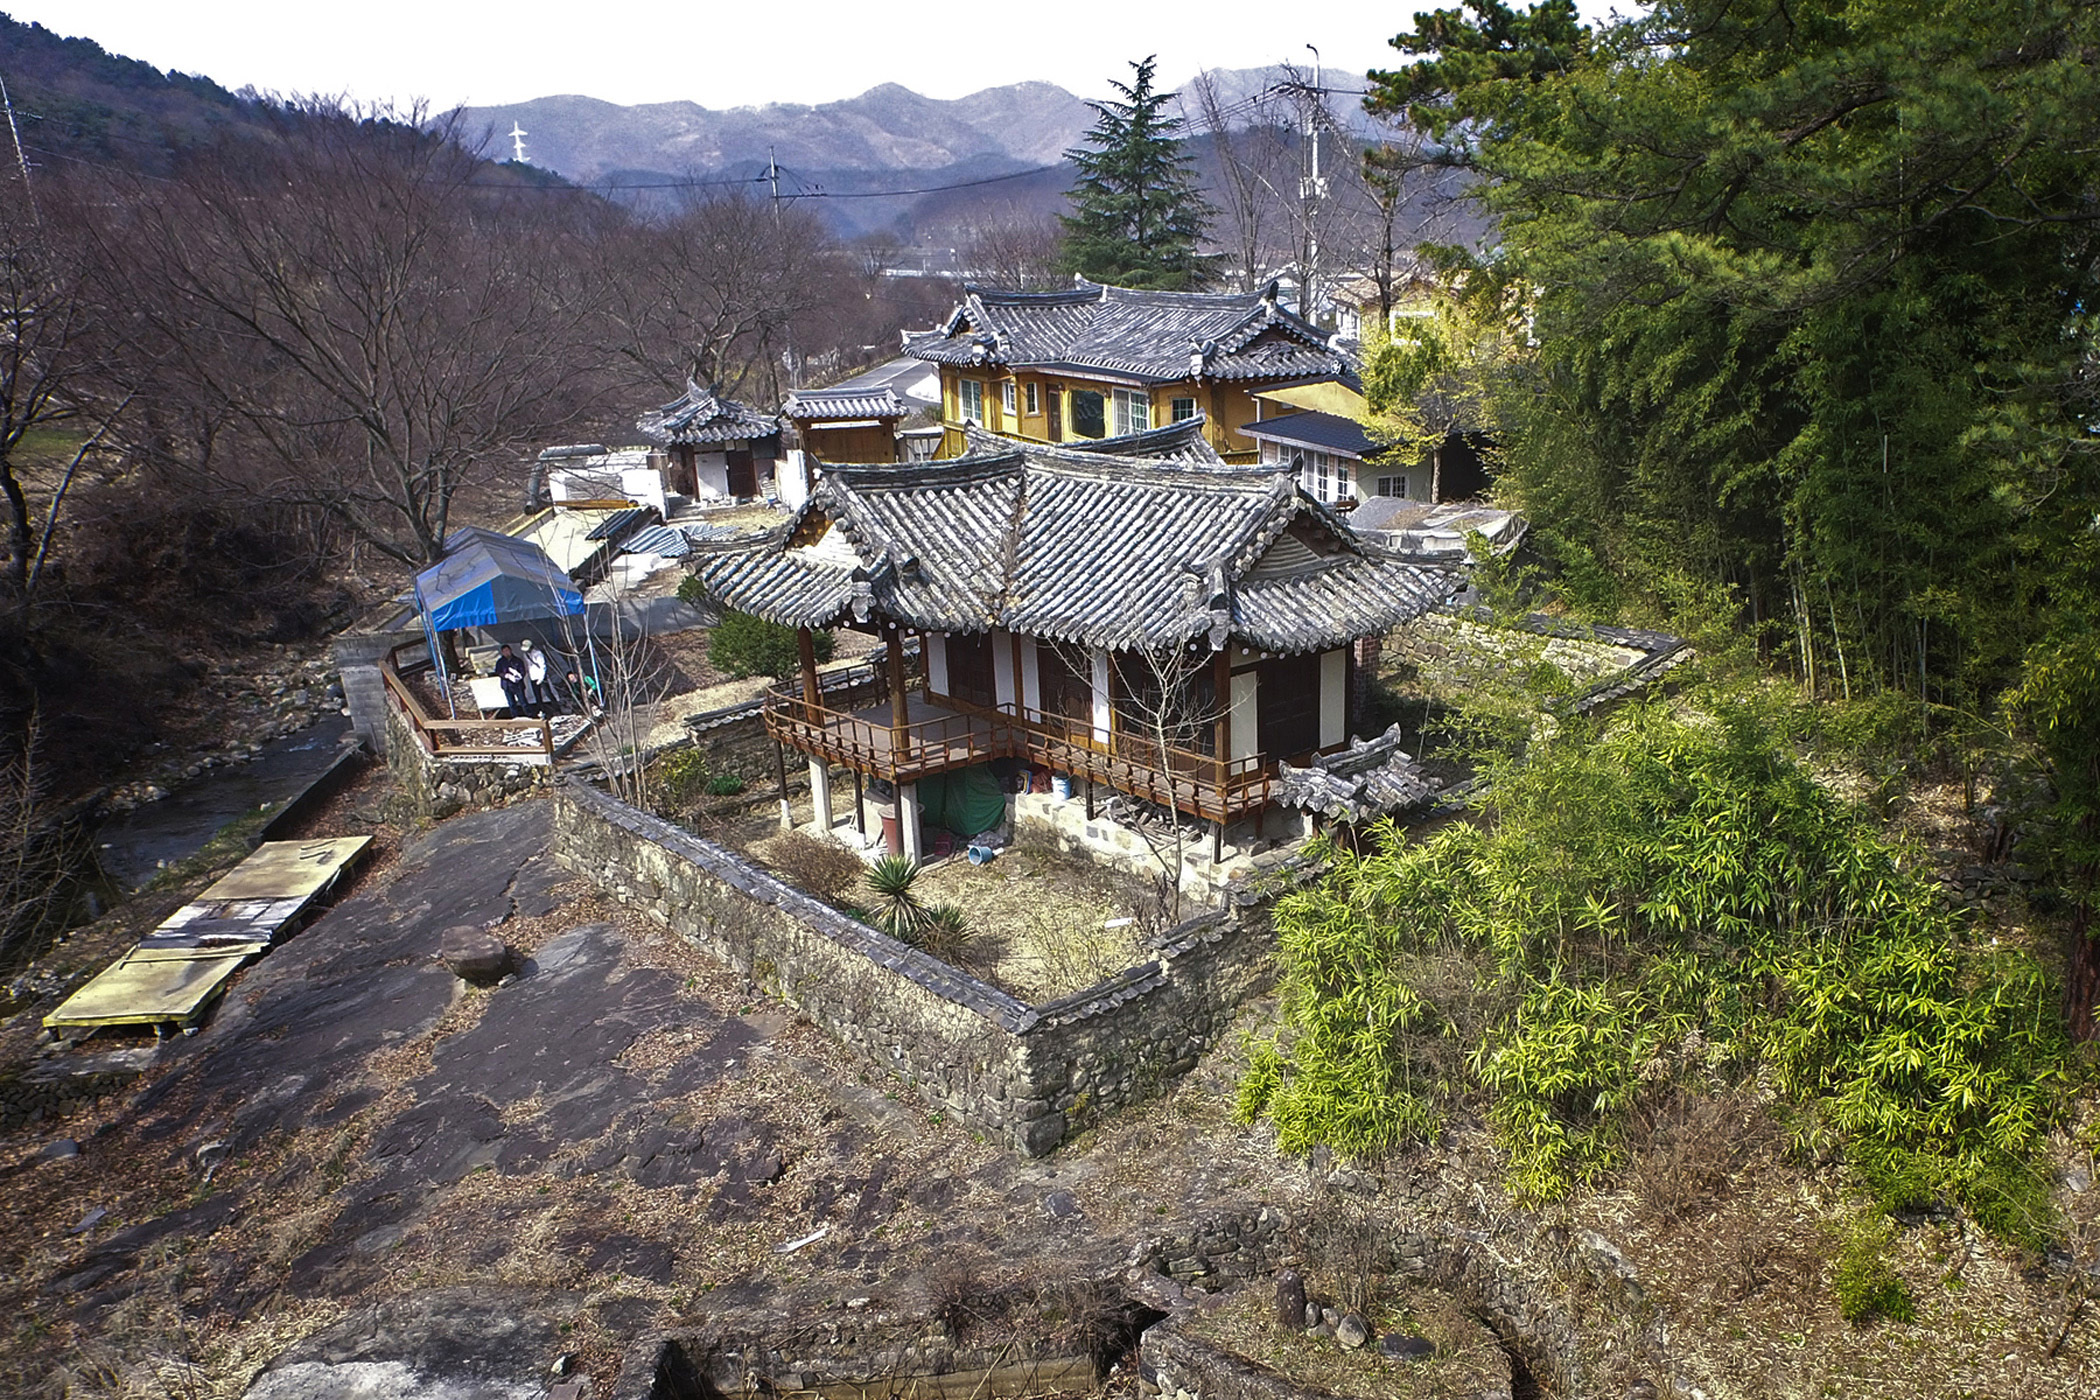 South Korea,                               Simwonjeong: Rising land values and a lack of legal protection are threatening Simwonjeong Pavilion, a marker of Korean national heritage, which could be irreversibly changed or even lost.